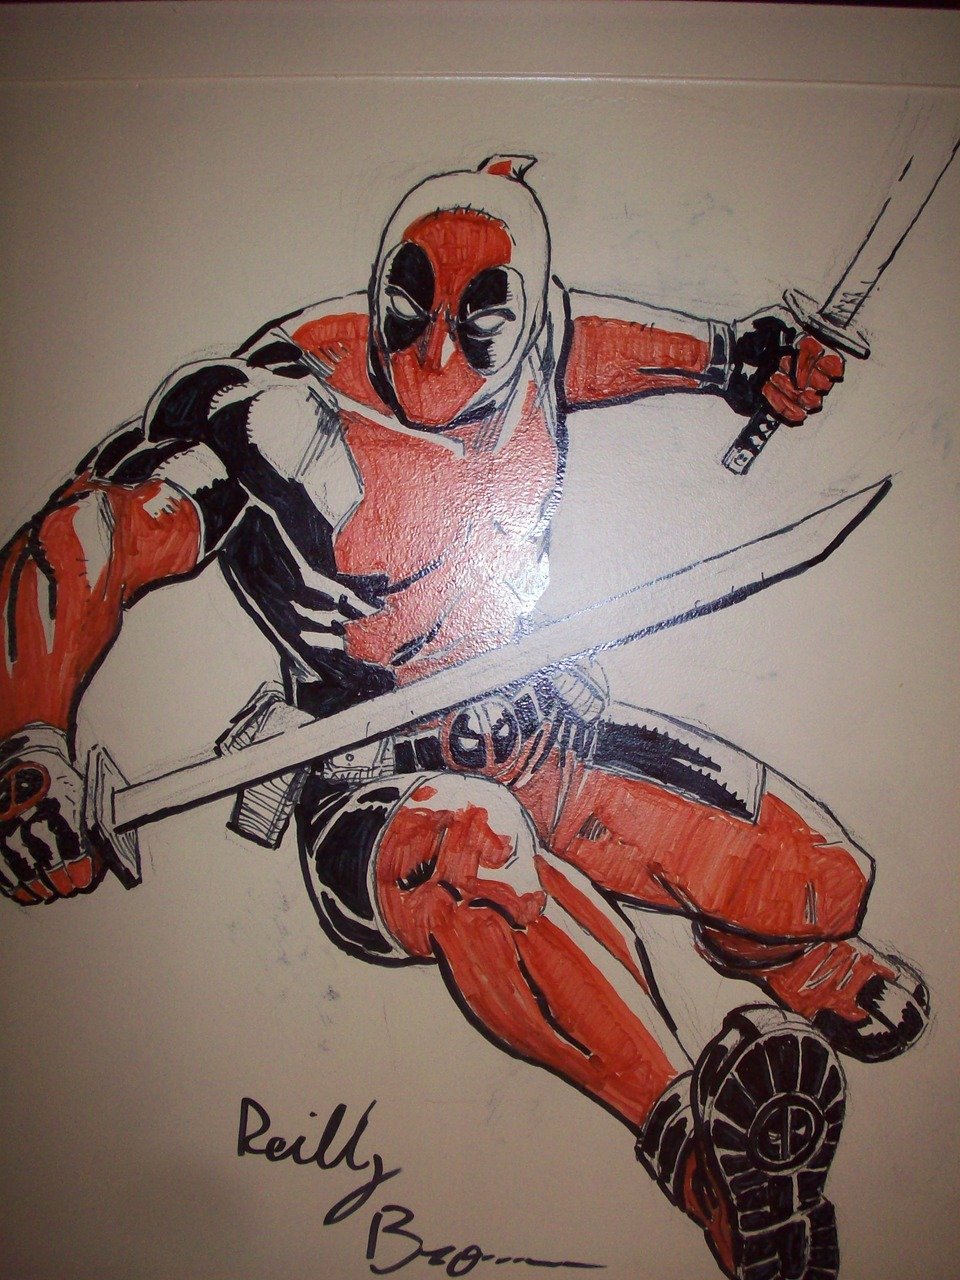 Here's a closeup of the Deadpool drawing I was talking about yesterday